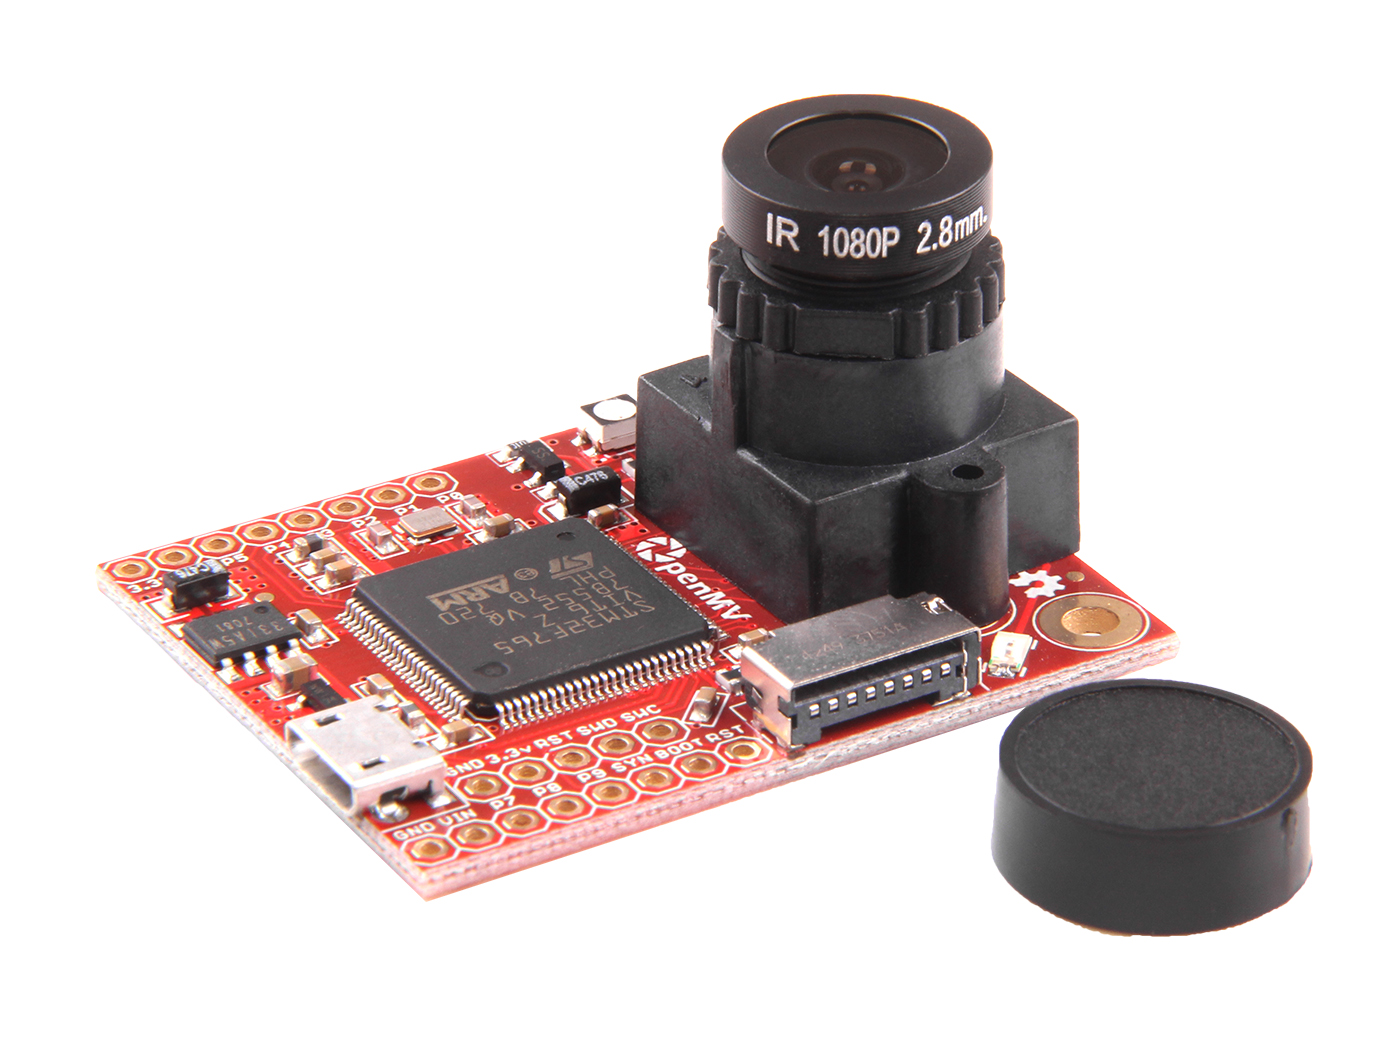 Openmv Cam M7 Machine Vision Seeed Studio Infrared Receiver Circuit Group Picture Image By Tag